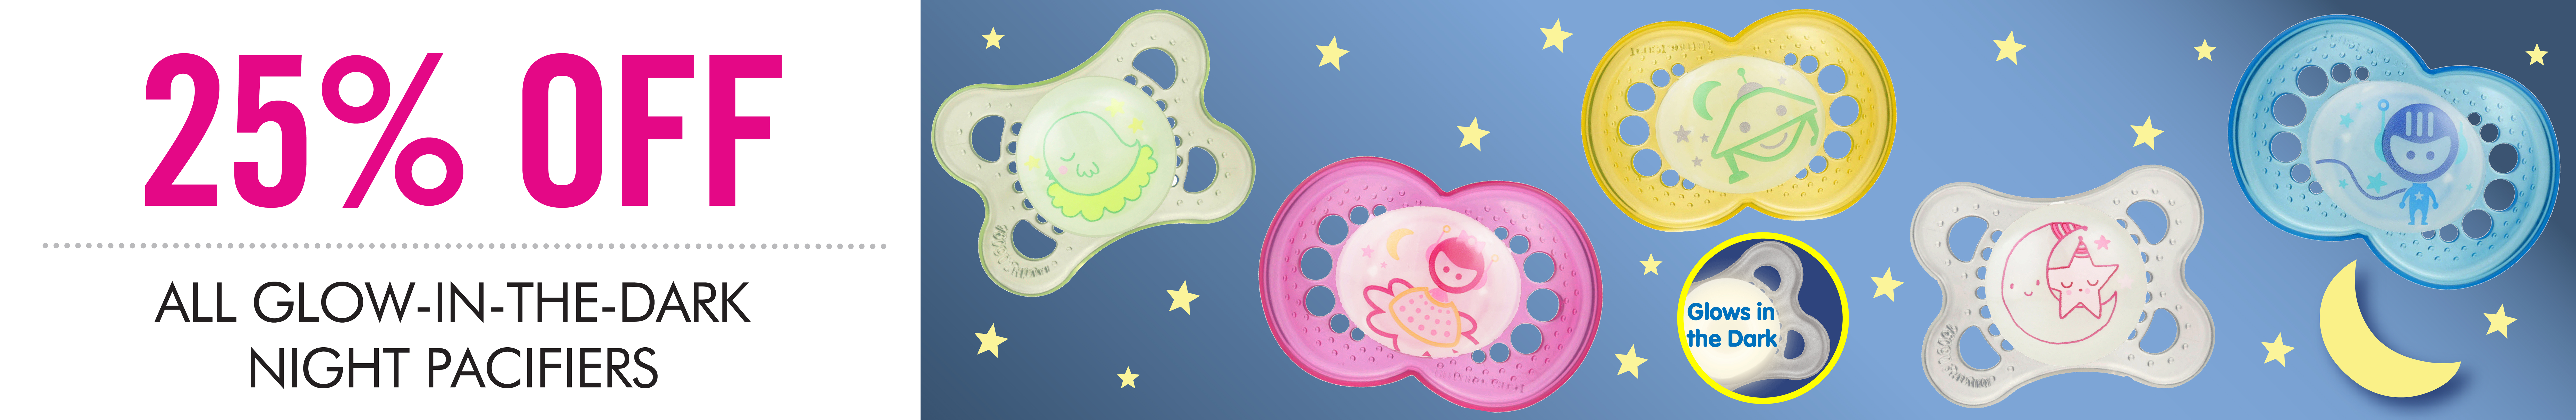 25% OFF Glow-in-the-dark Night Pacifiers